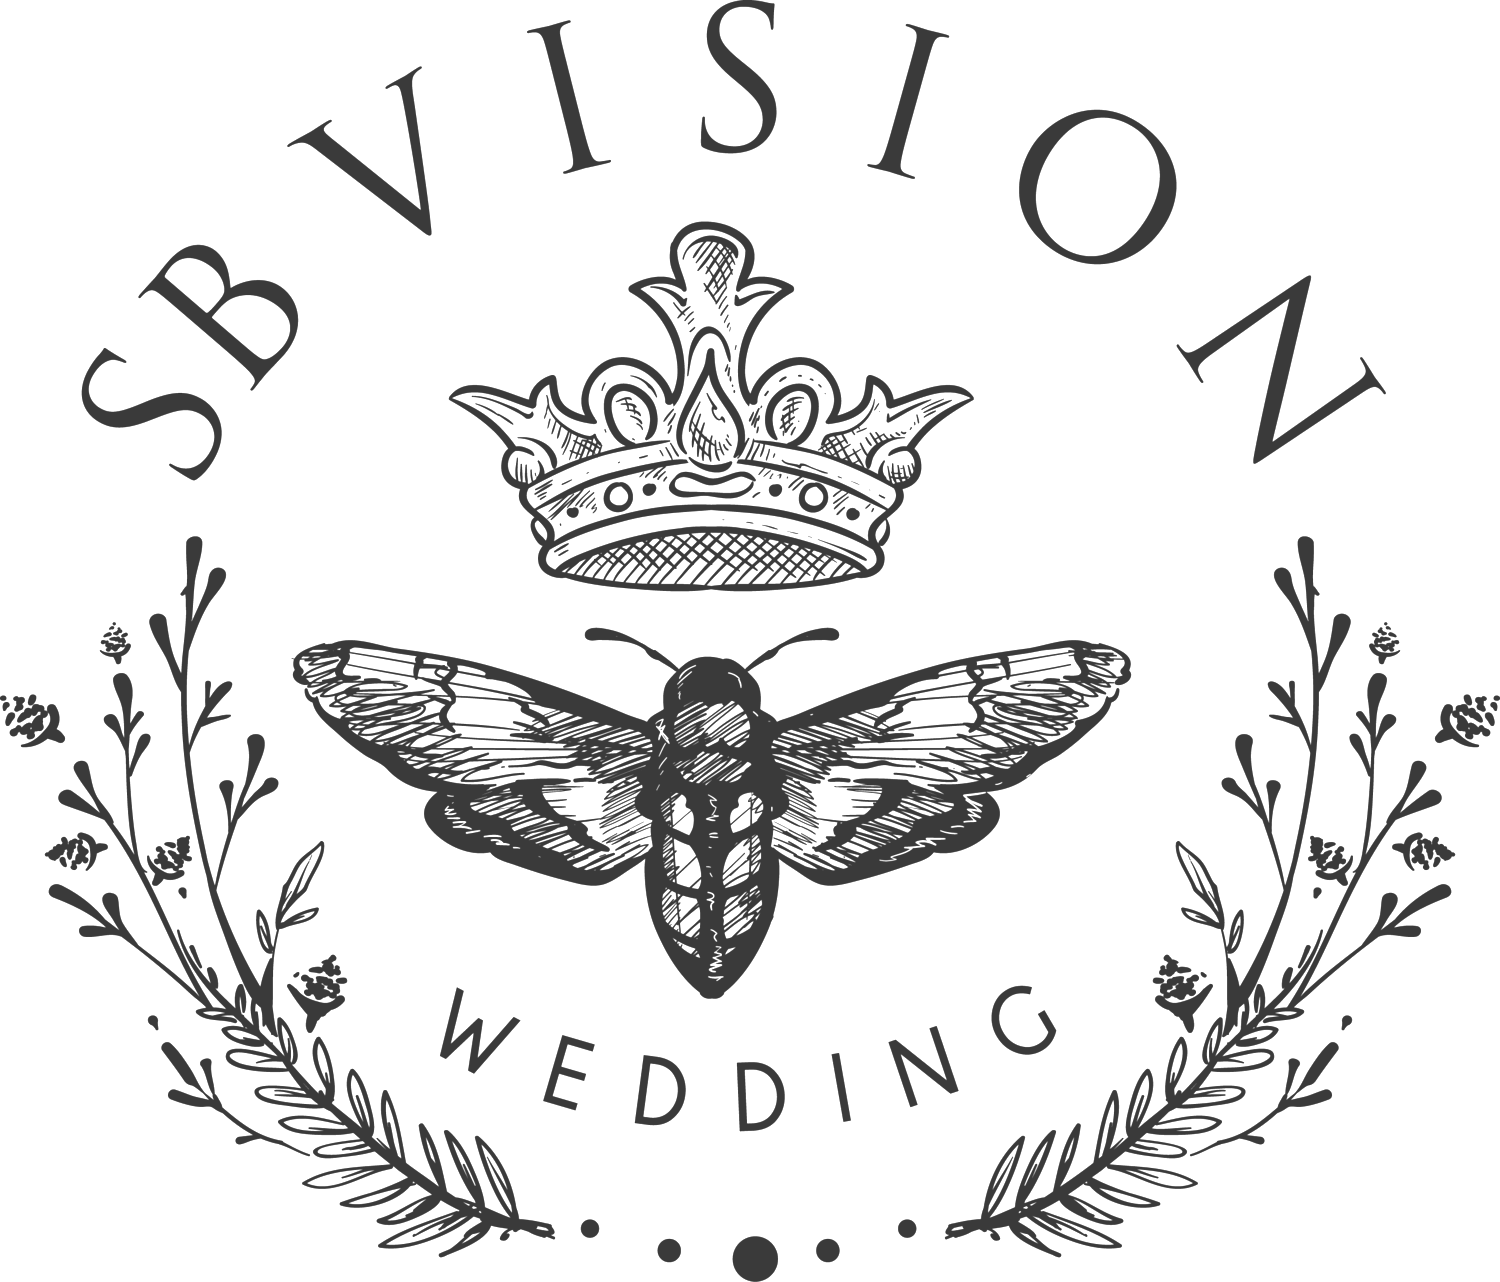 SB v i s i o n WEDDING | Unique Lifestyle Wedding Photographer | FL Based